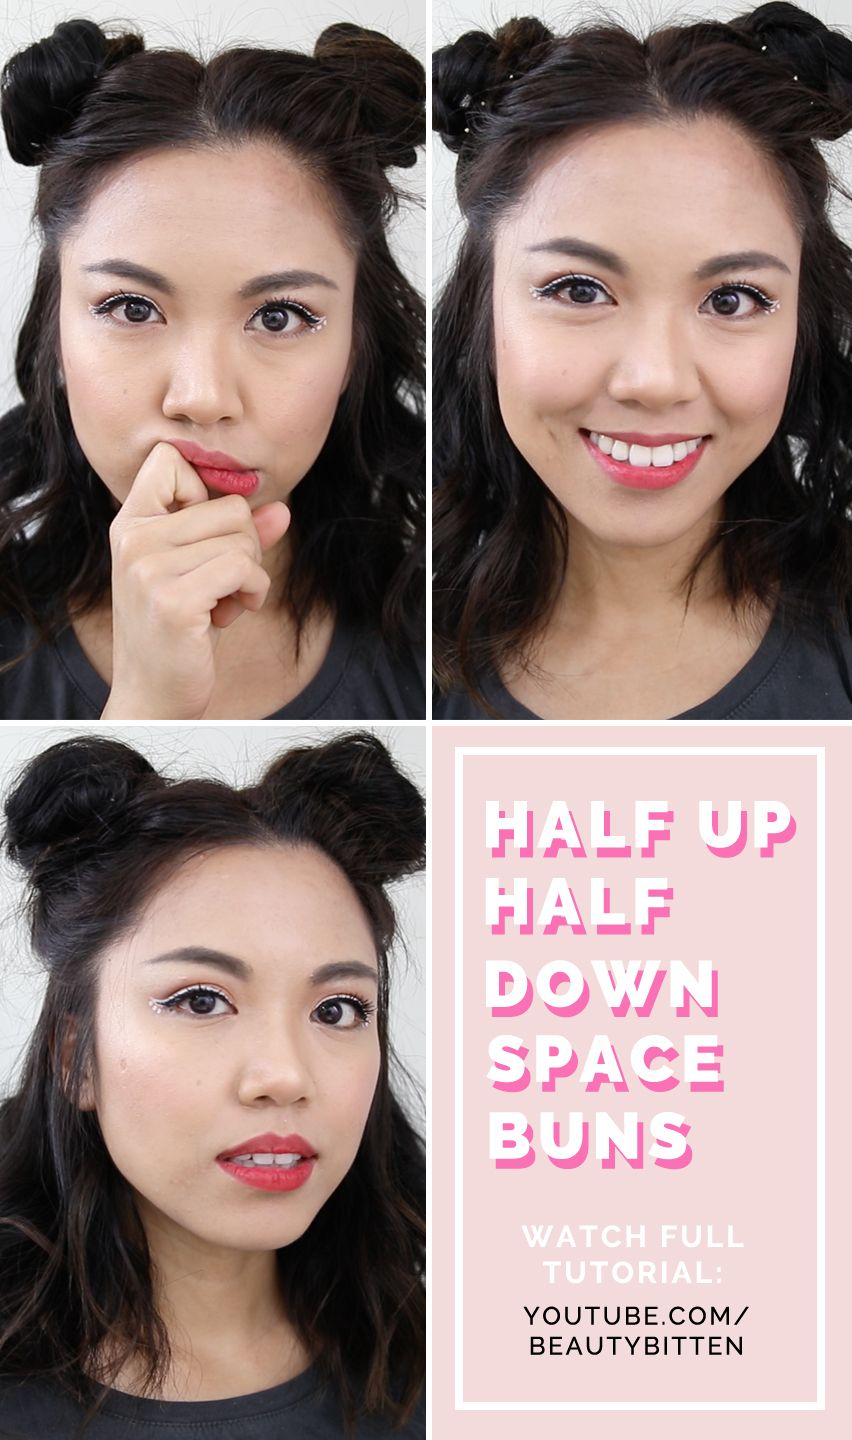 Hair How To Heatless Half Up Half Down Space Buns Tutorial For Short Hair Coachella Hairstyle Inspirat Short Hair Tutorial Short Hair Bun Half Bun Hairstyles